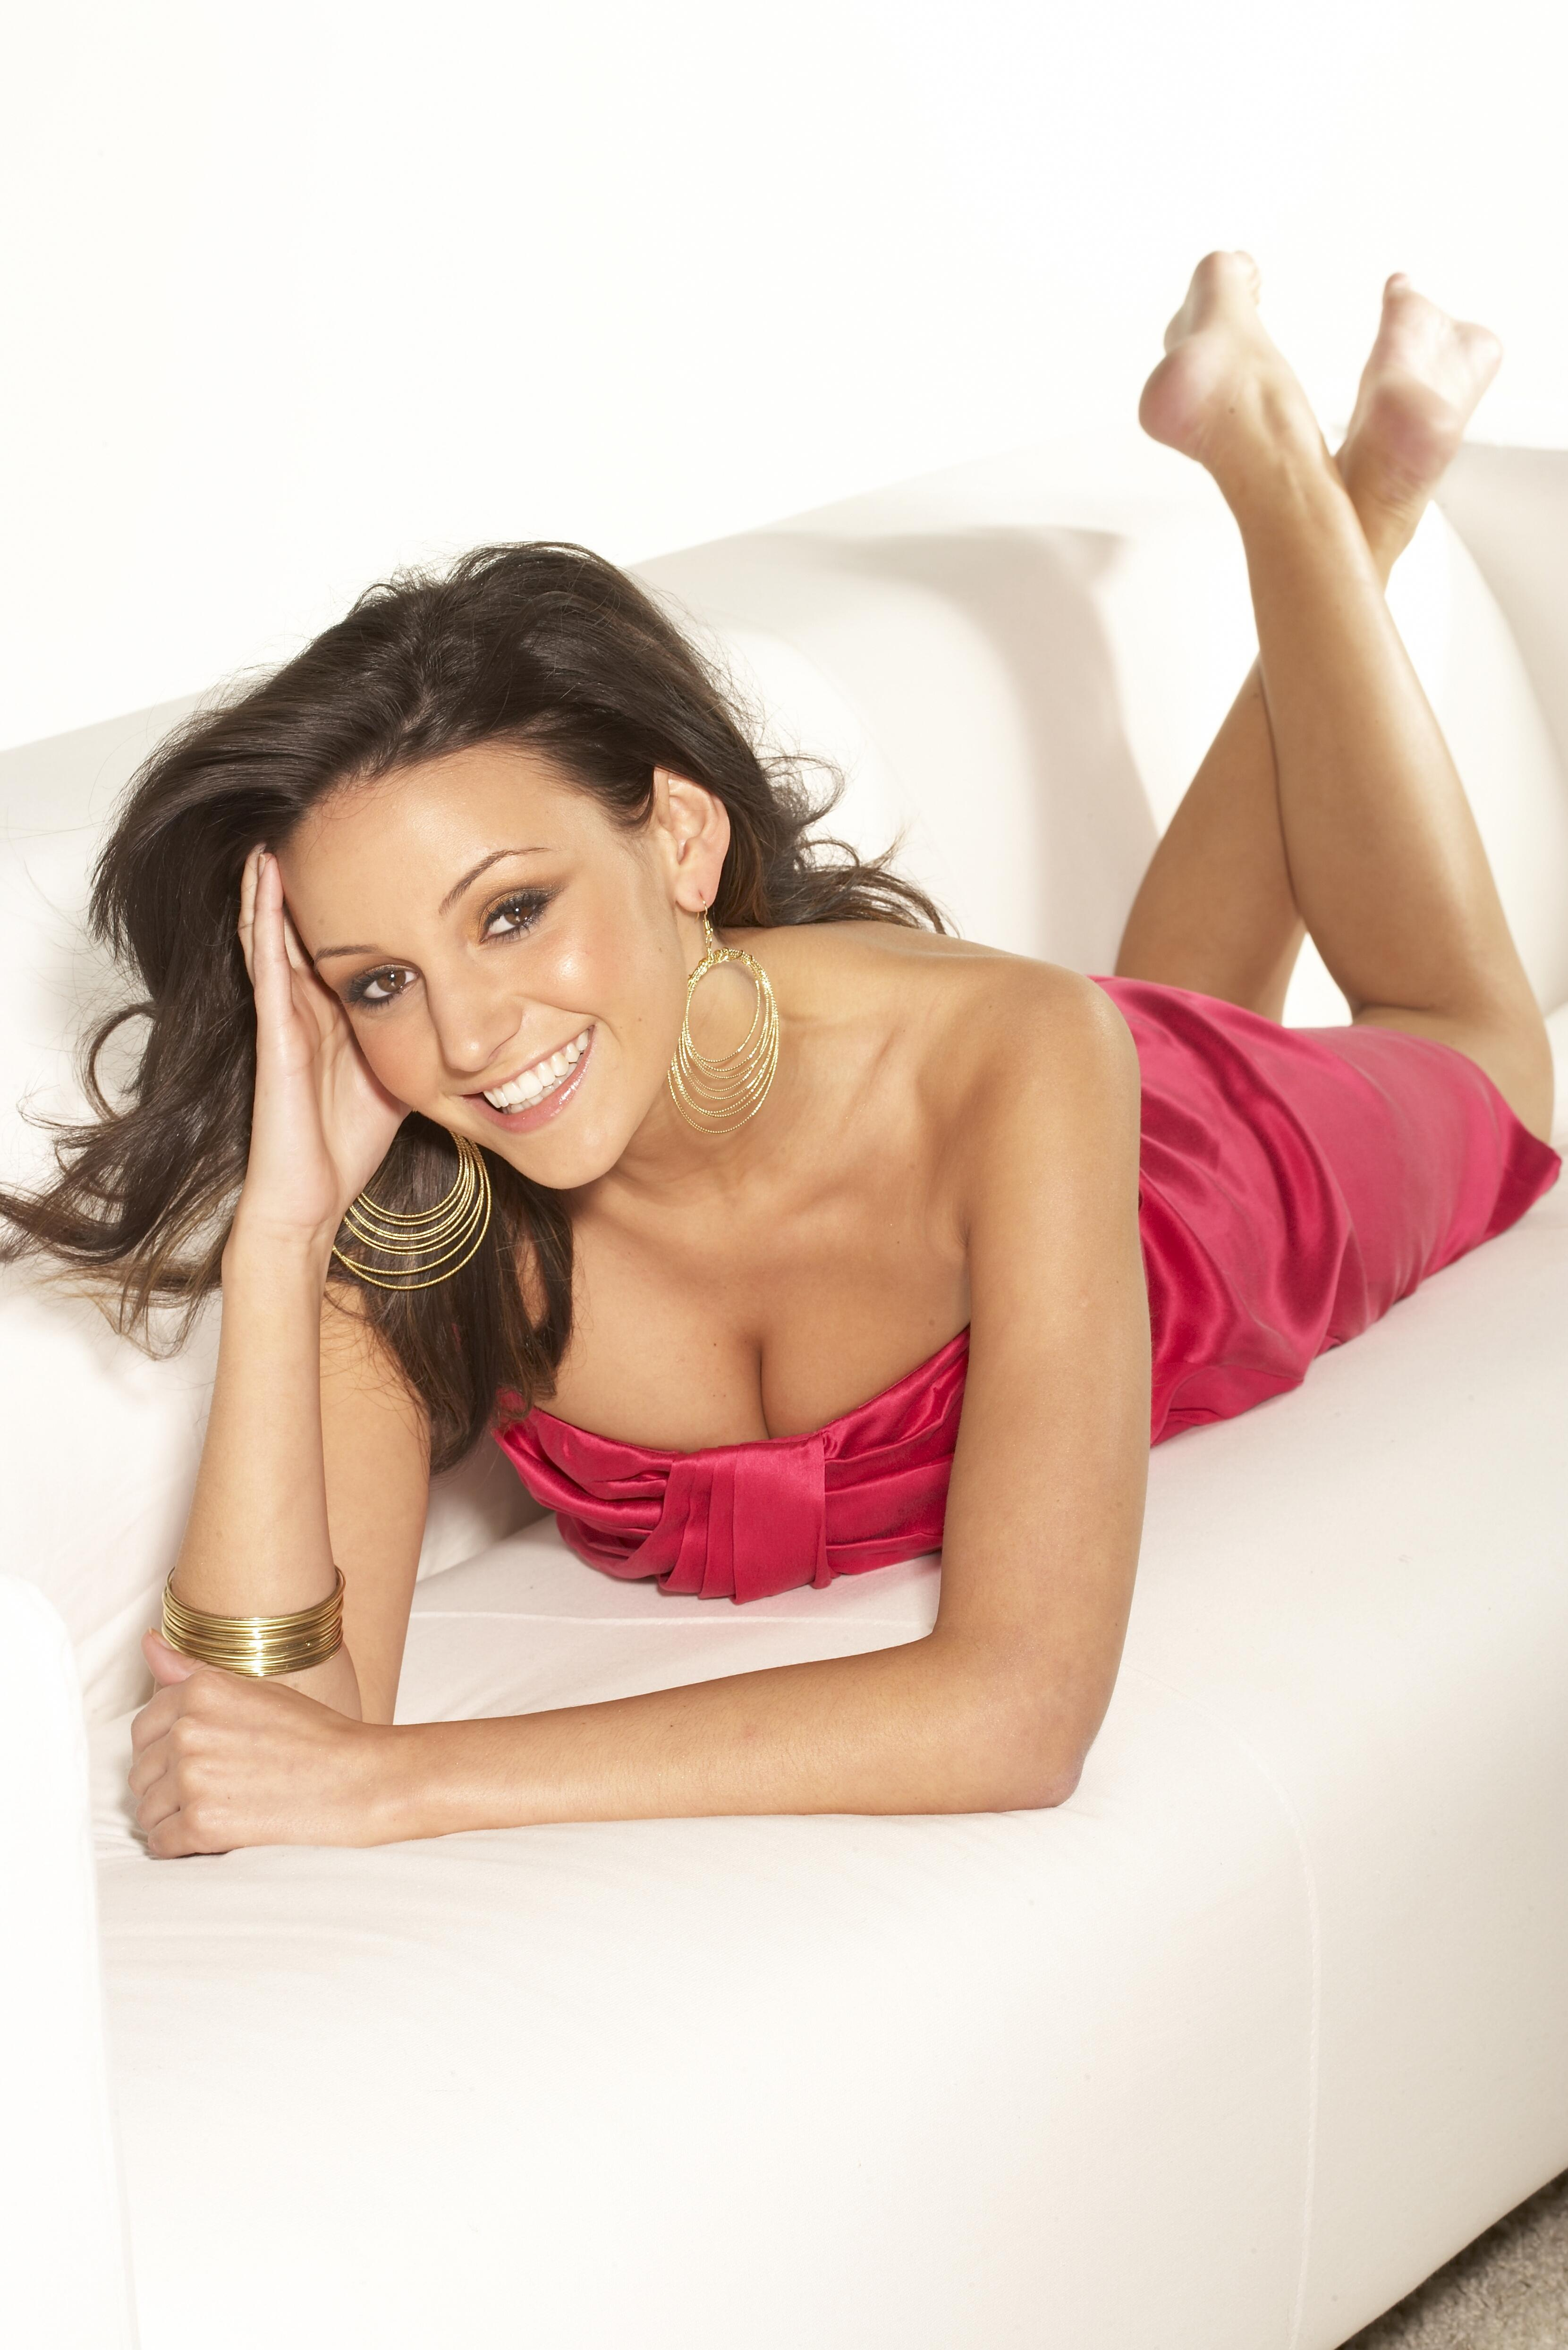 Pin michelle keegan feet image search results on pinterest